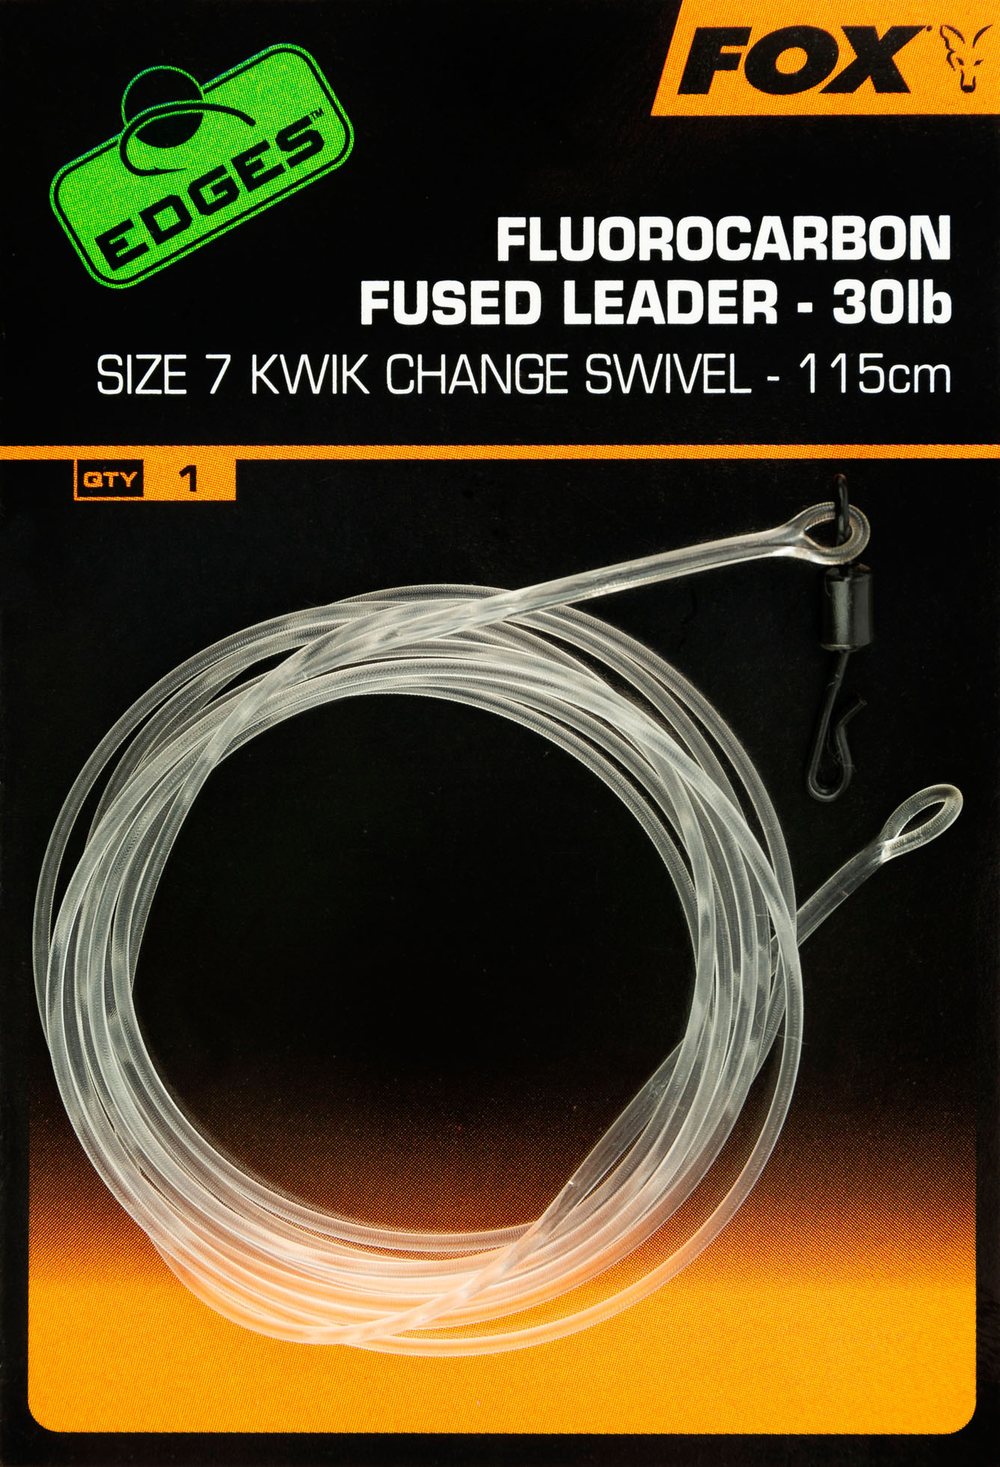 Edges-30lb-Fluorocarbon-Fused-Leader_S7-Kwik-Change-Swivel_115cm.png